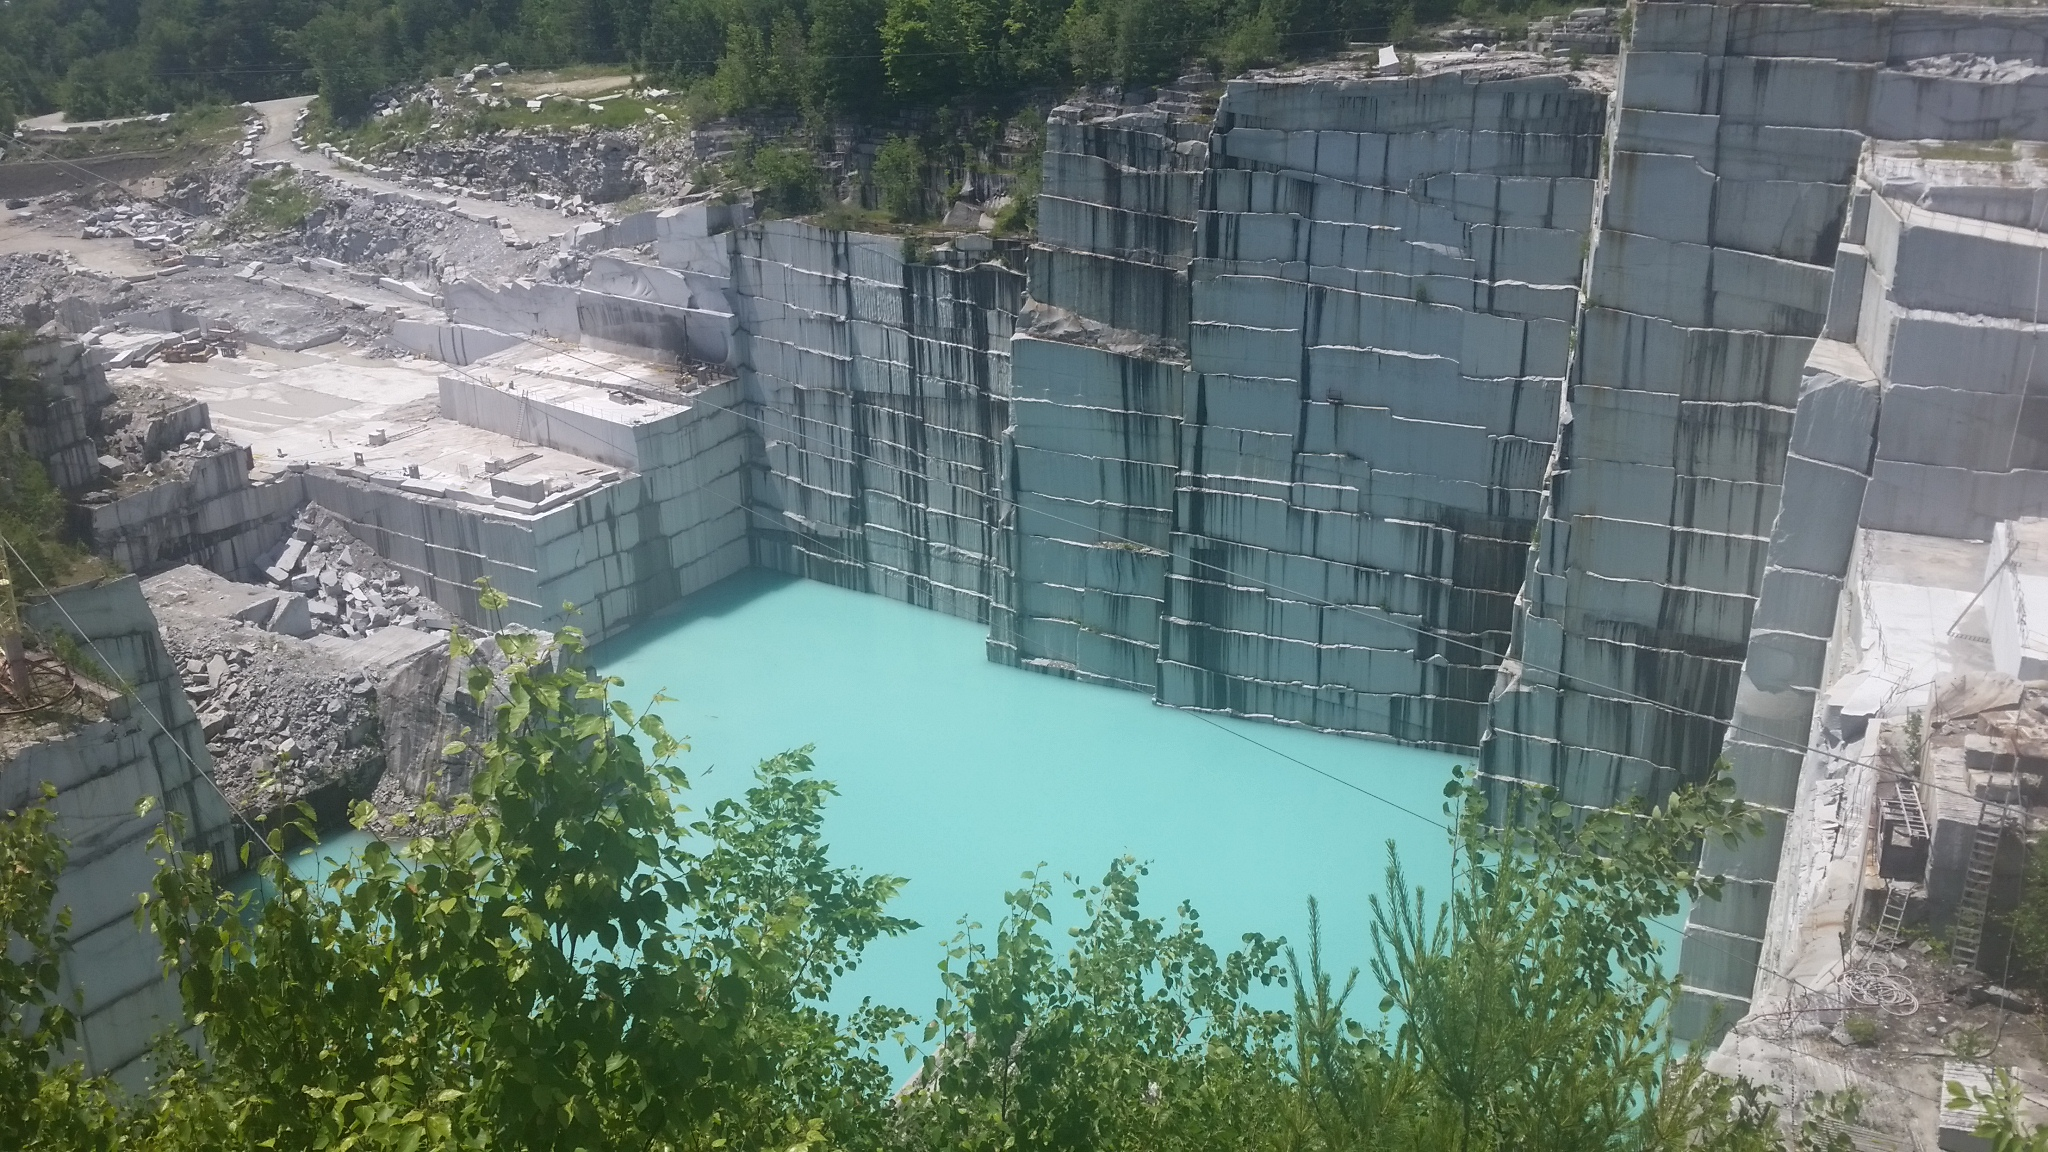 06.30.16 – Rock of Ages Granite Quarry in Barre, Vermont – Dora and ...